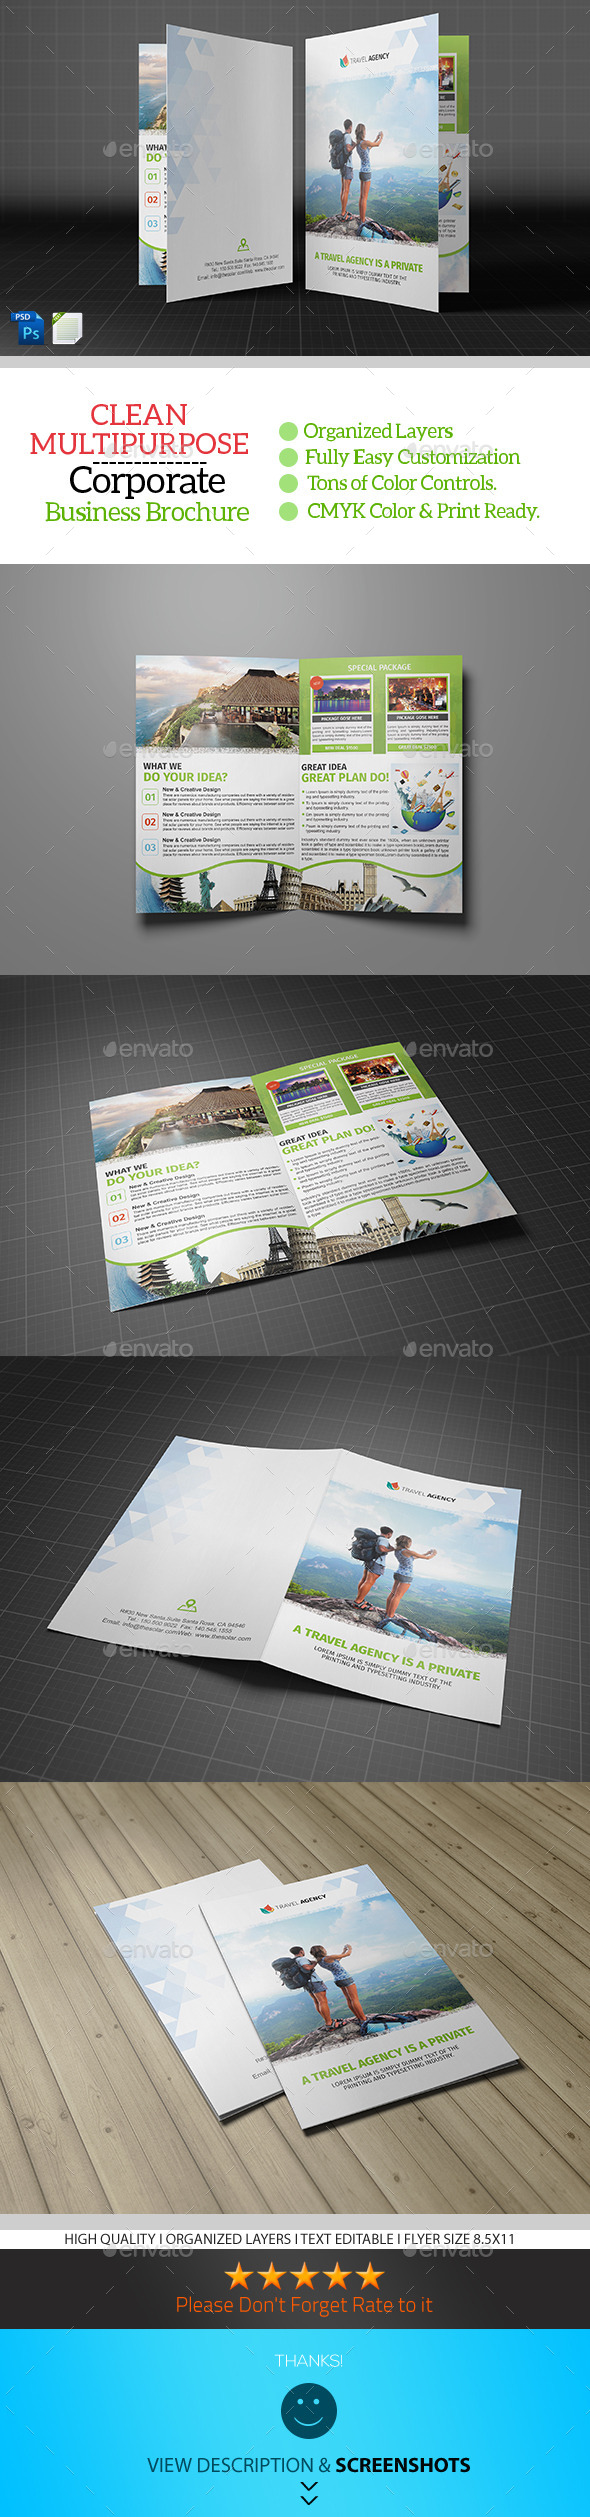 GraphicRiver Holiday Travel Agency Bifold Brochure 9347873